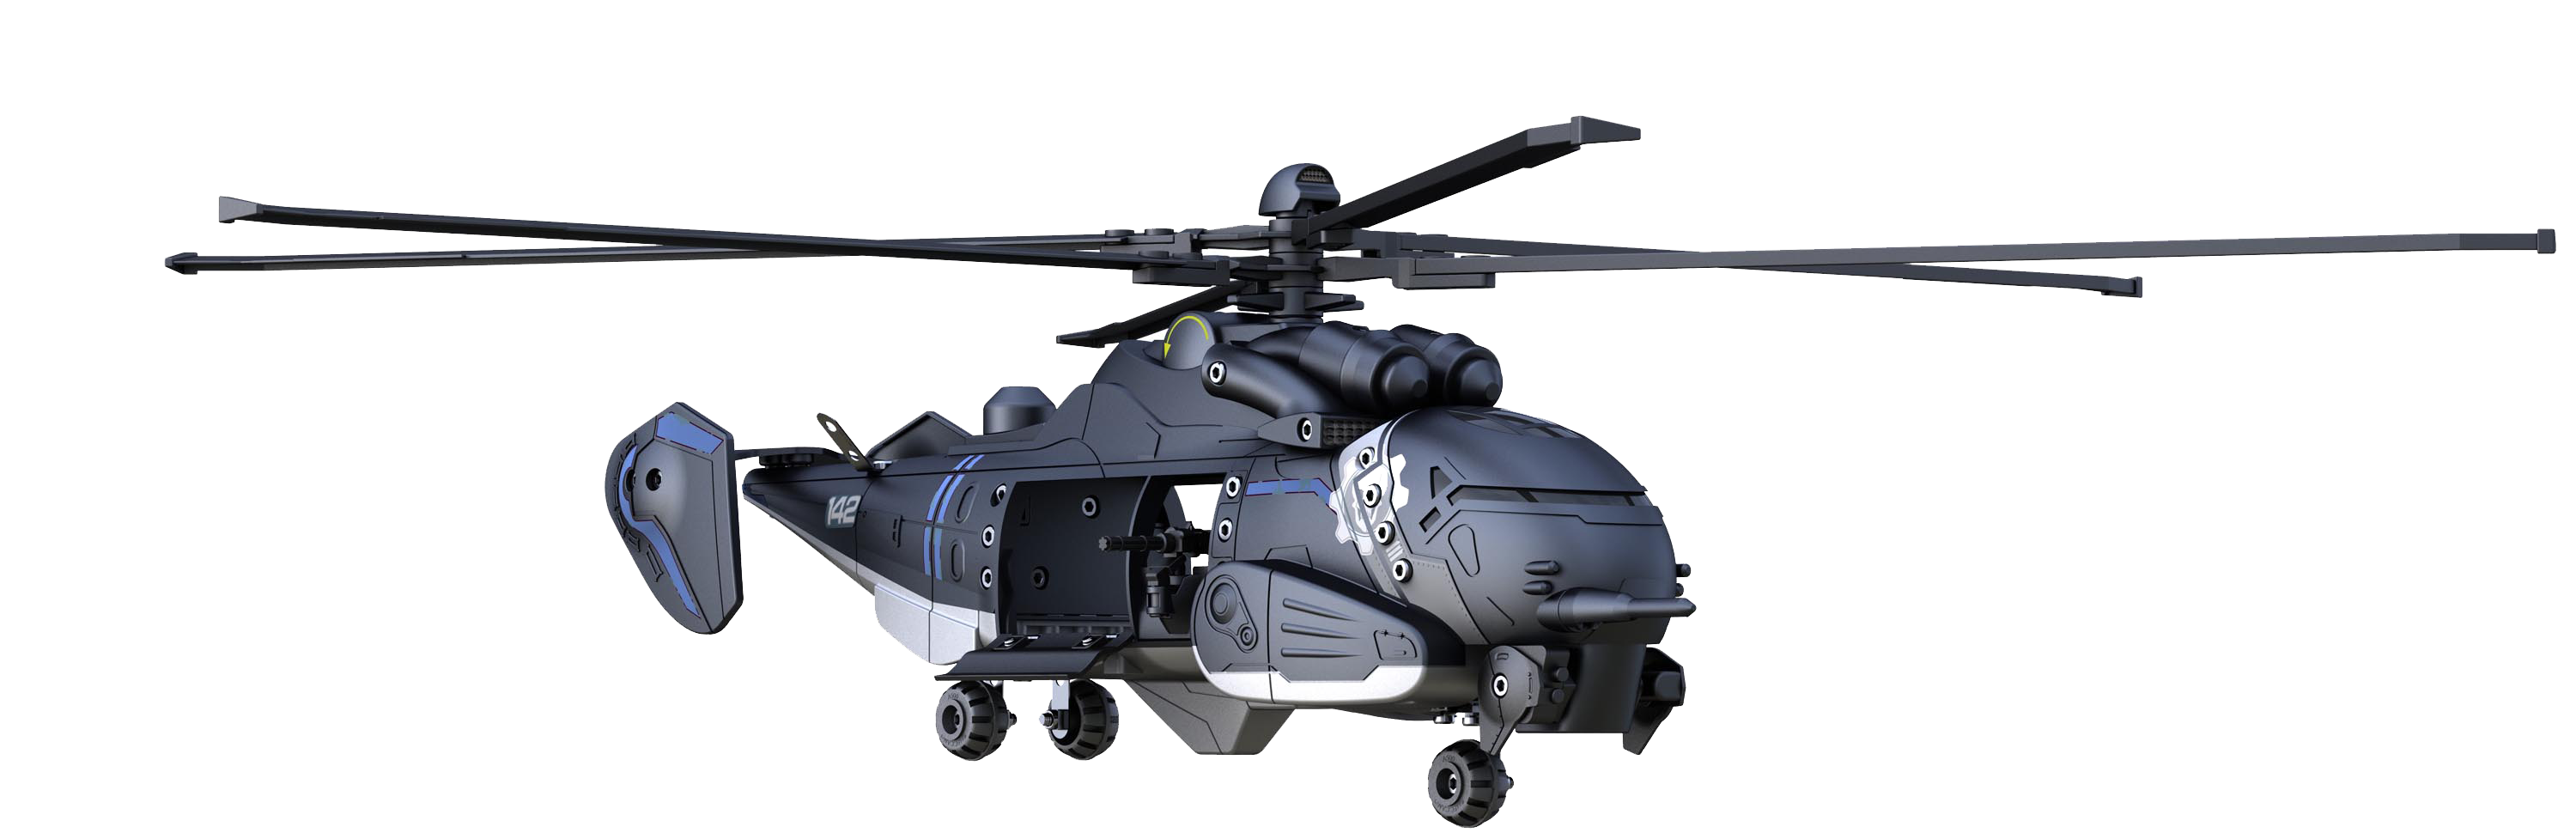 Army Helicopter Free Png Image PNG Image